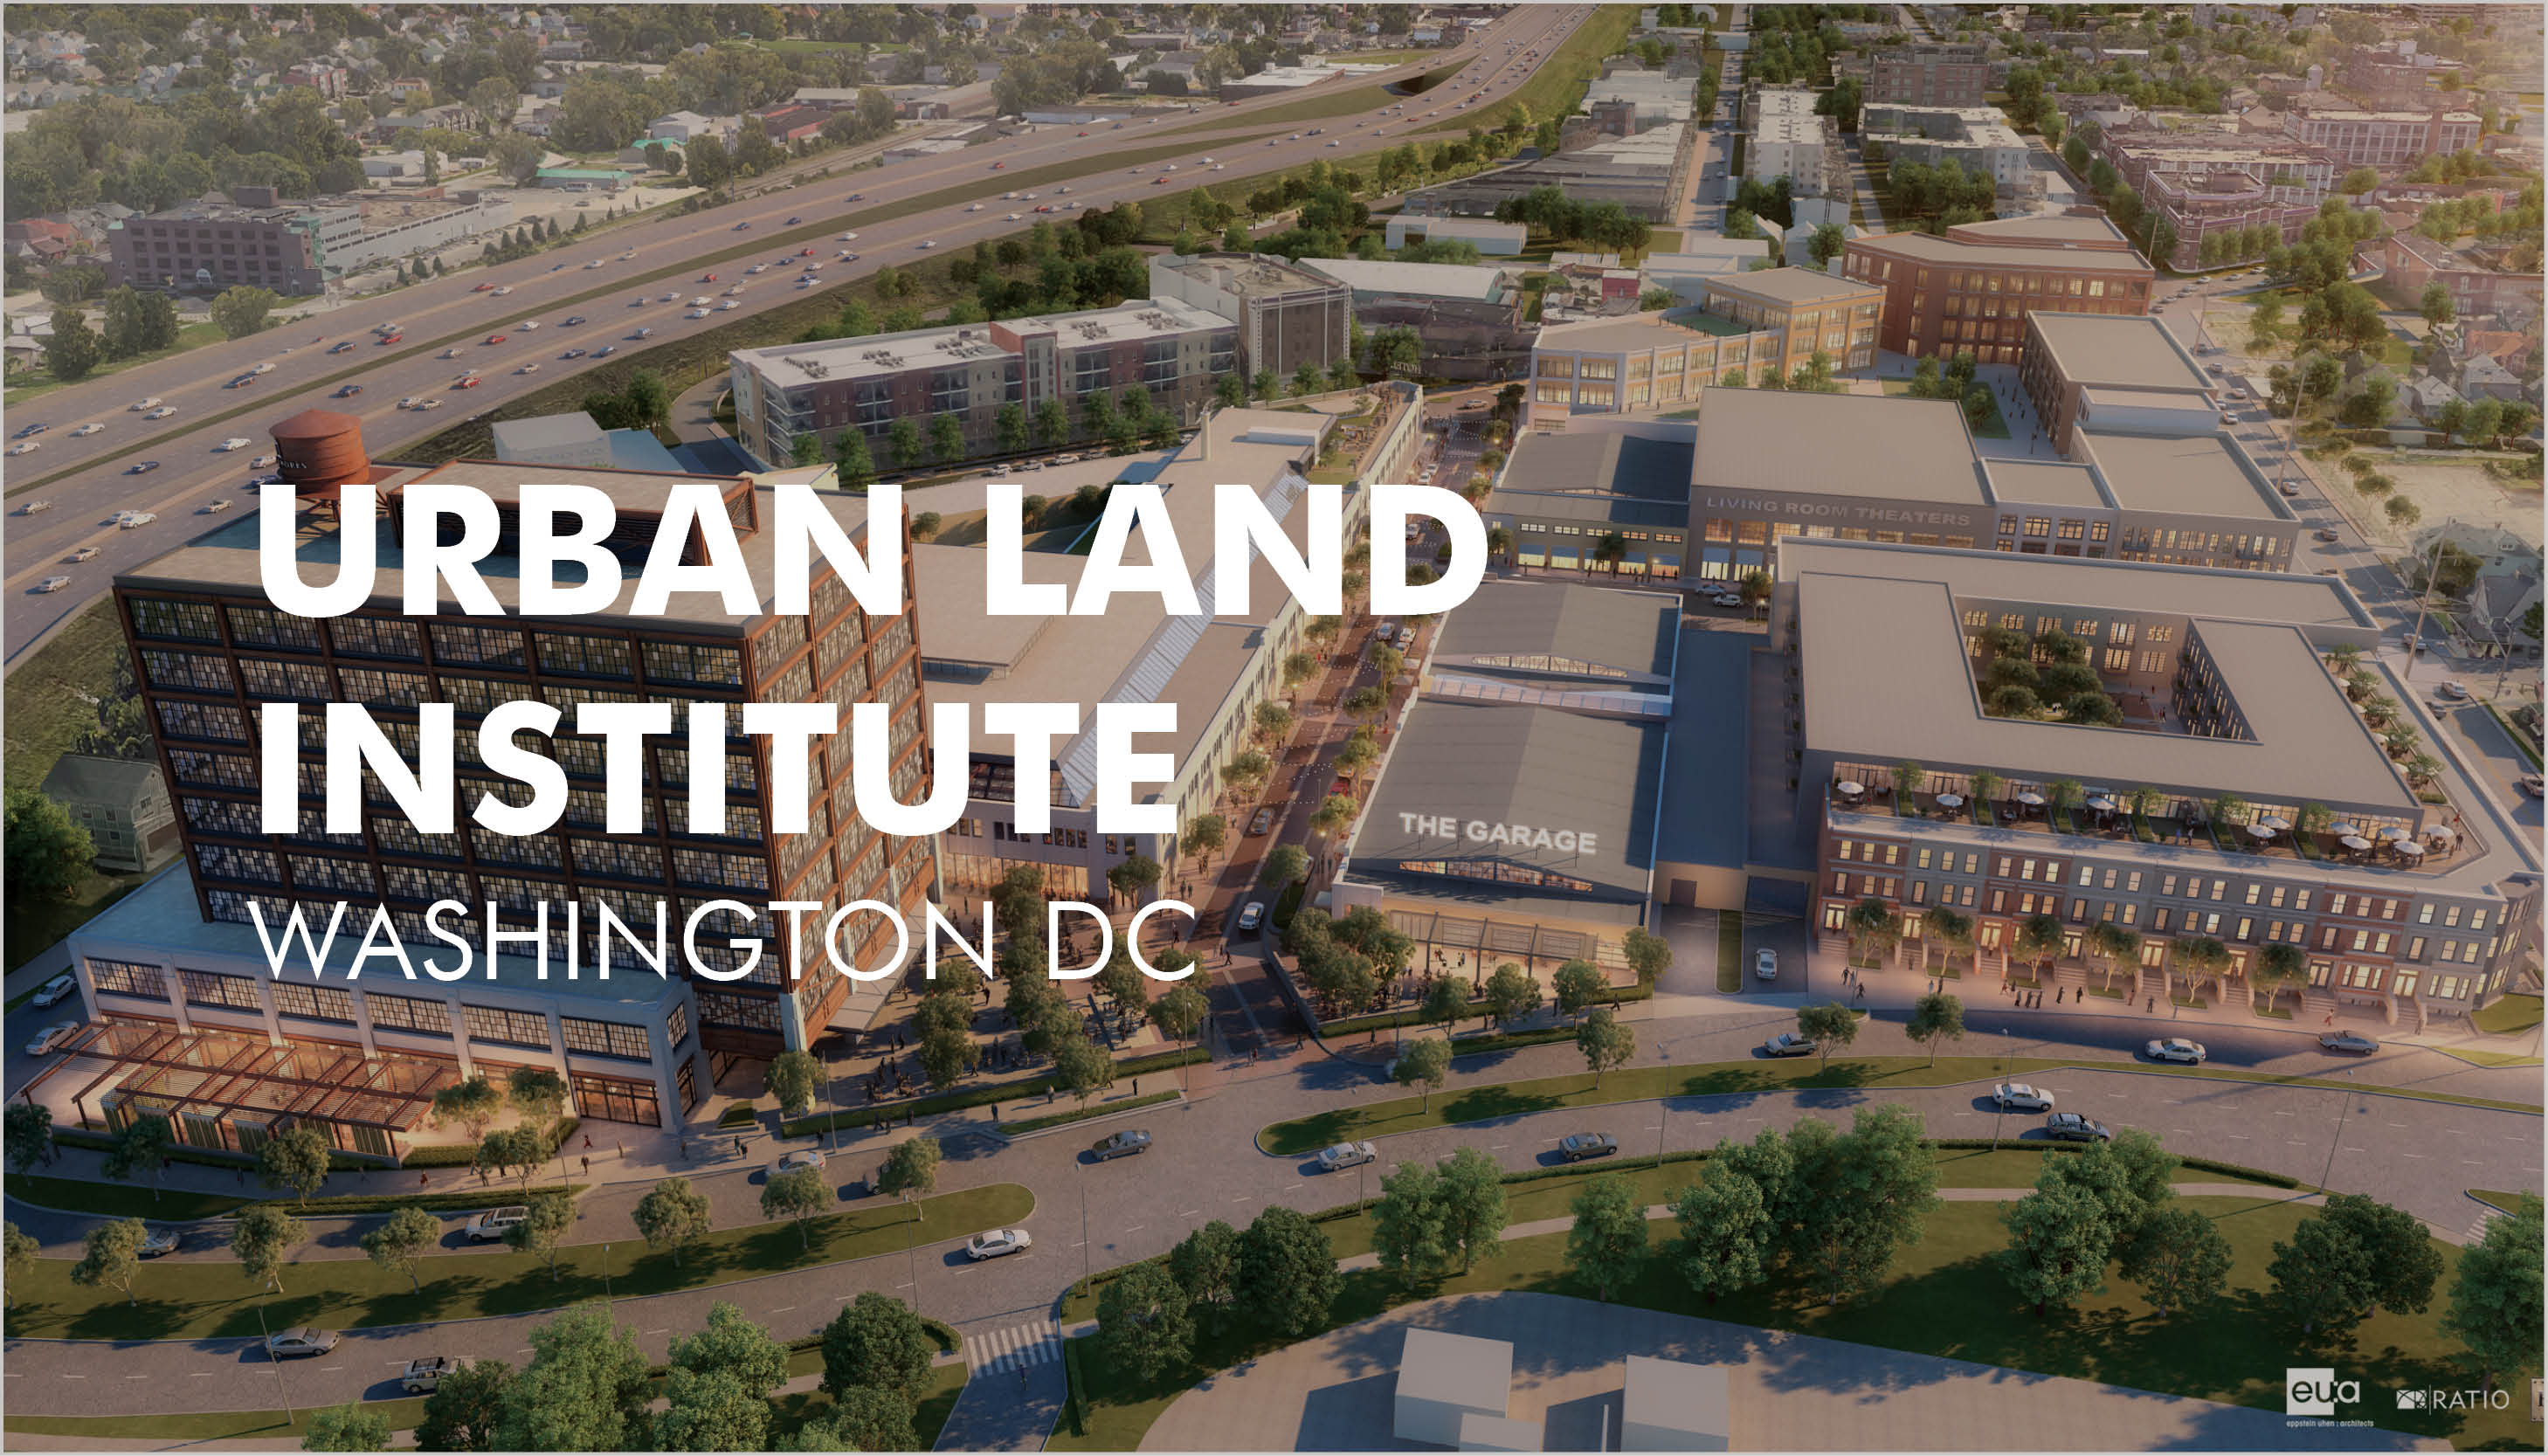 2019 Urban Land Institute Fall Meeting Image